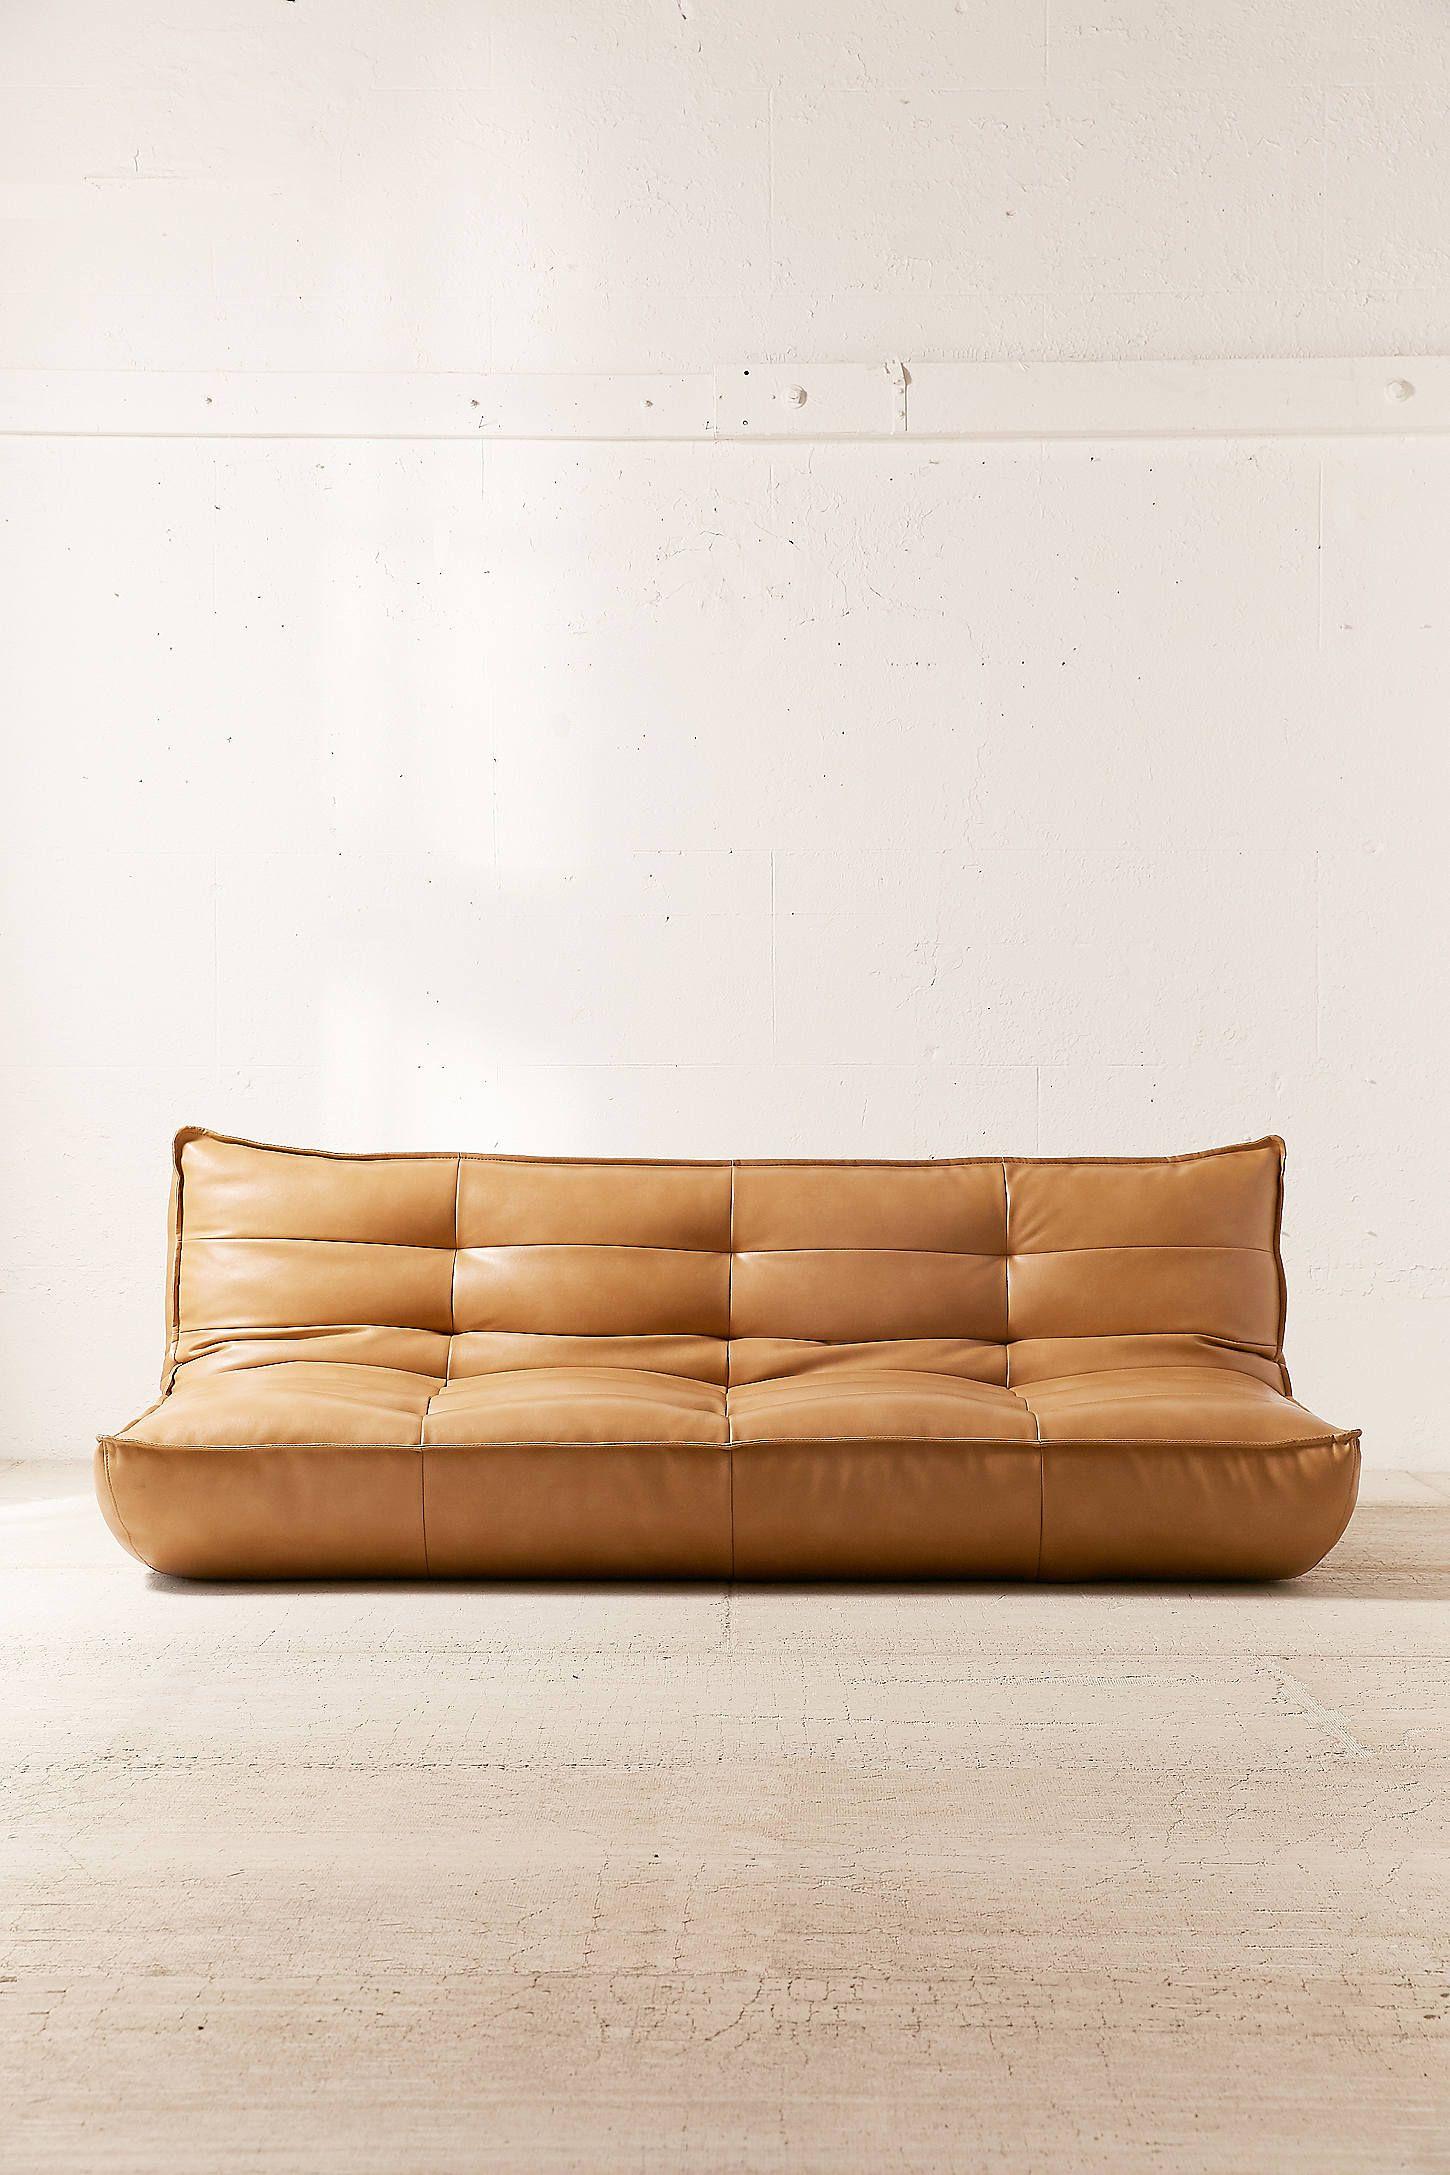 Möbel Urban Wohnzimmer Greta Recycled Leather Xl Sleeper Sofa Home Möbel Furniture